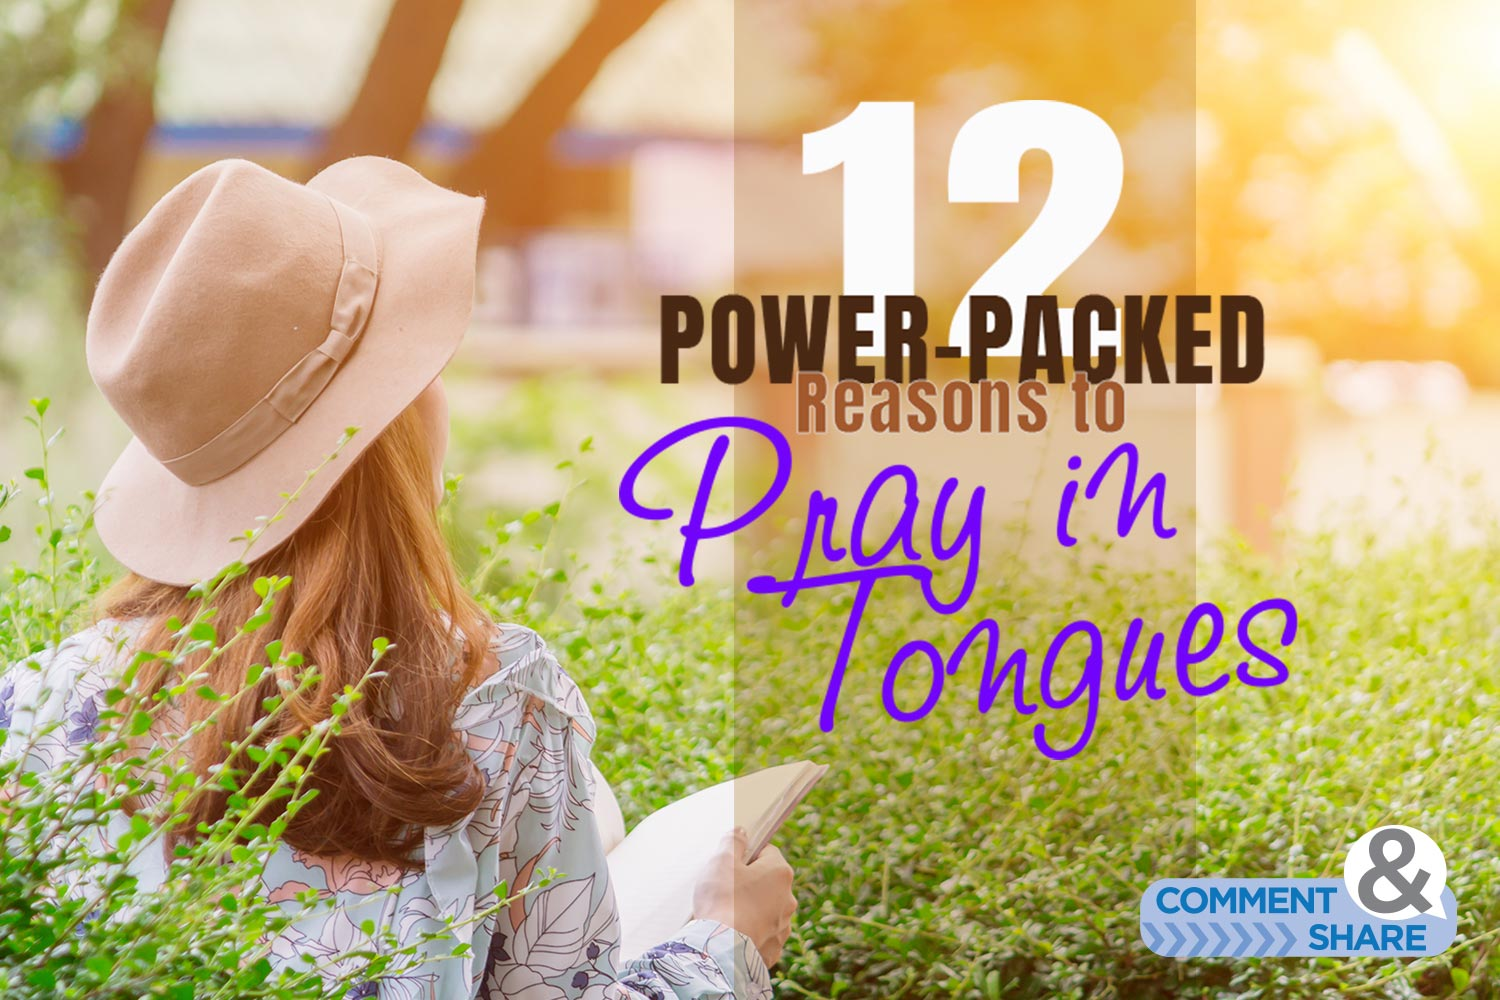 12 Power-Packed Reasons to Pray in Tongues